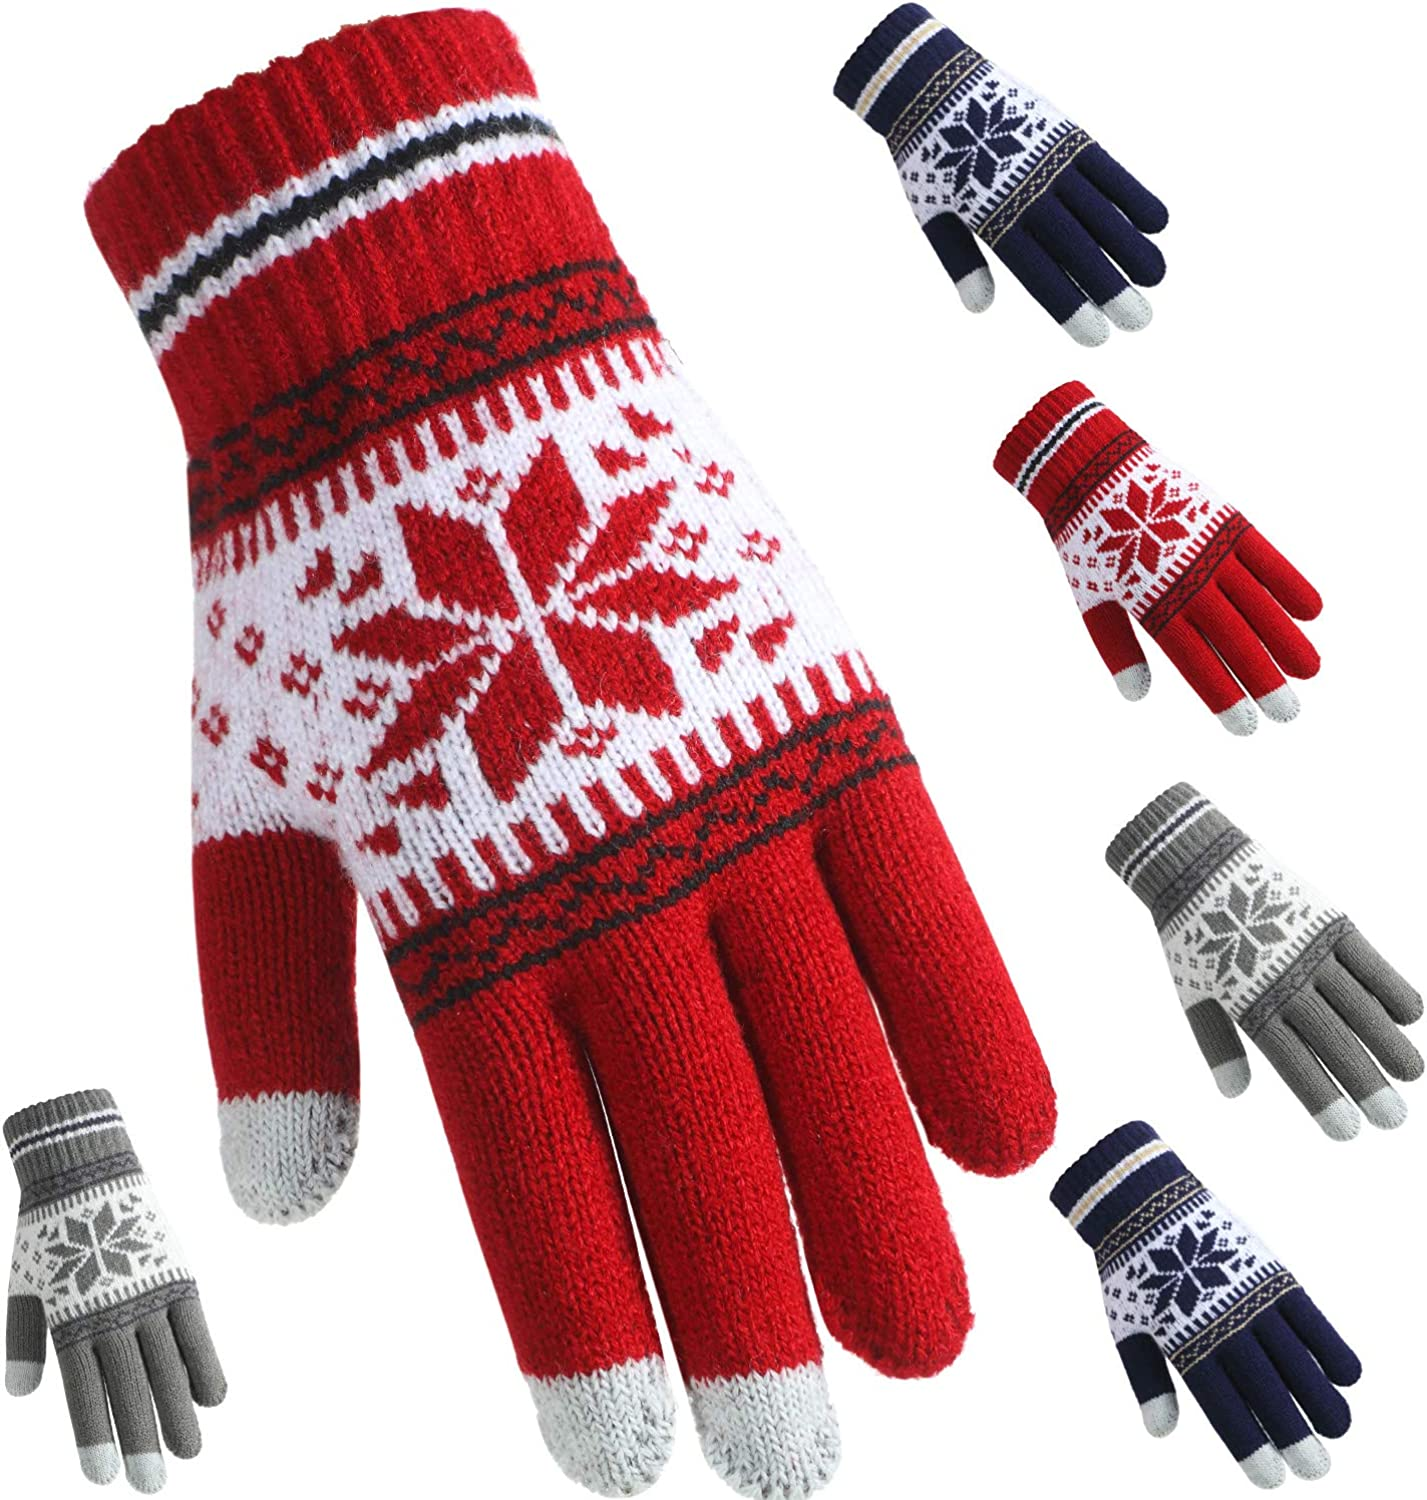 3 Pairs Texting Touchscreen Gloves Stretch Knitted Mechanic Winter Warm Gloves